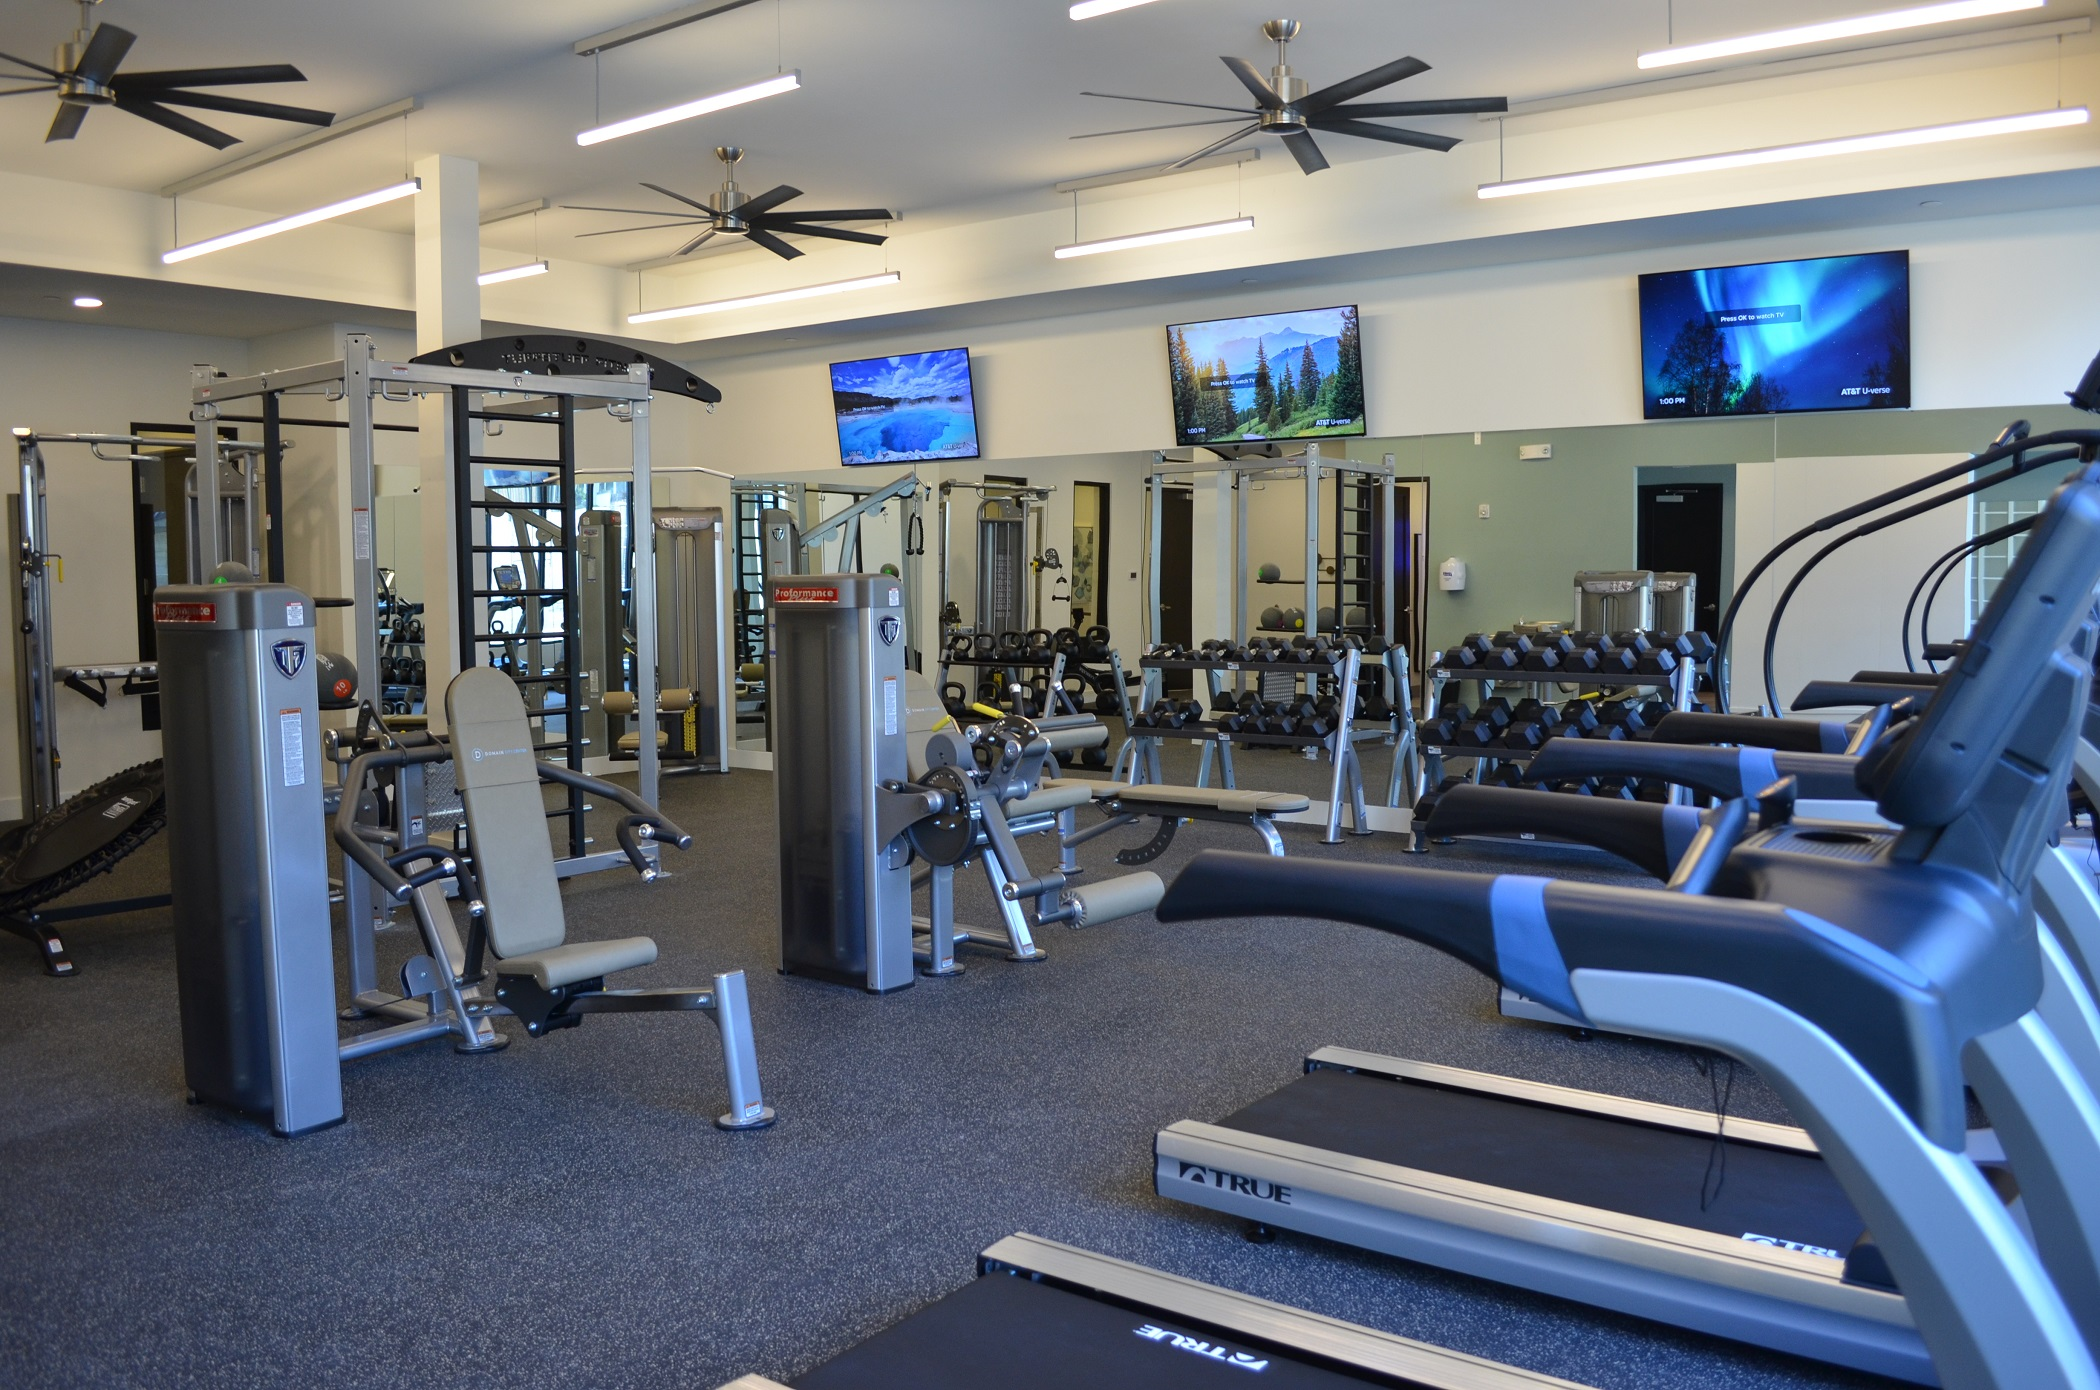 Fully-Equipped Fitness Center at Domain City Center Luxury Apartments in Lenexa, Kansas